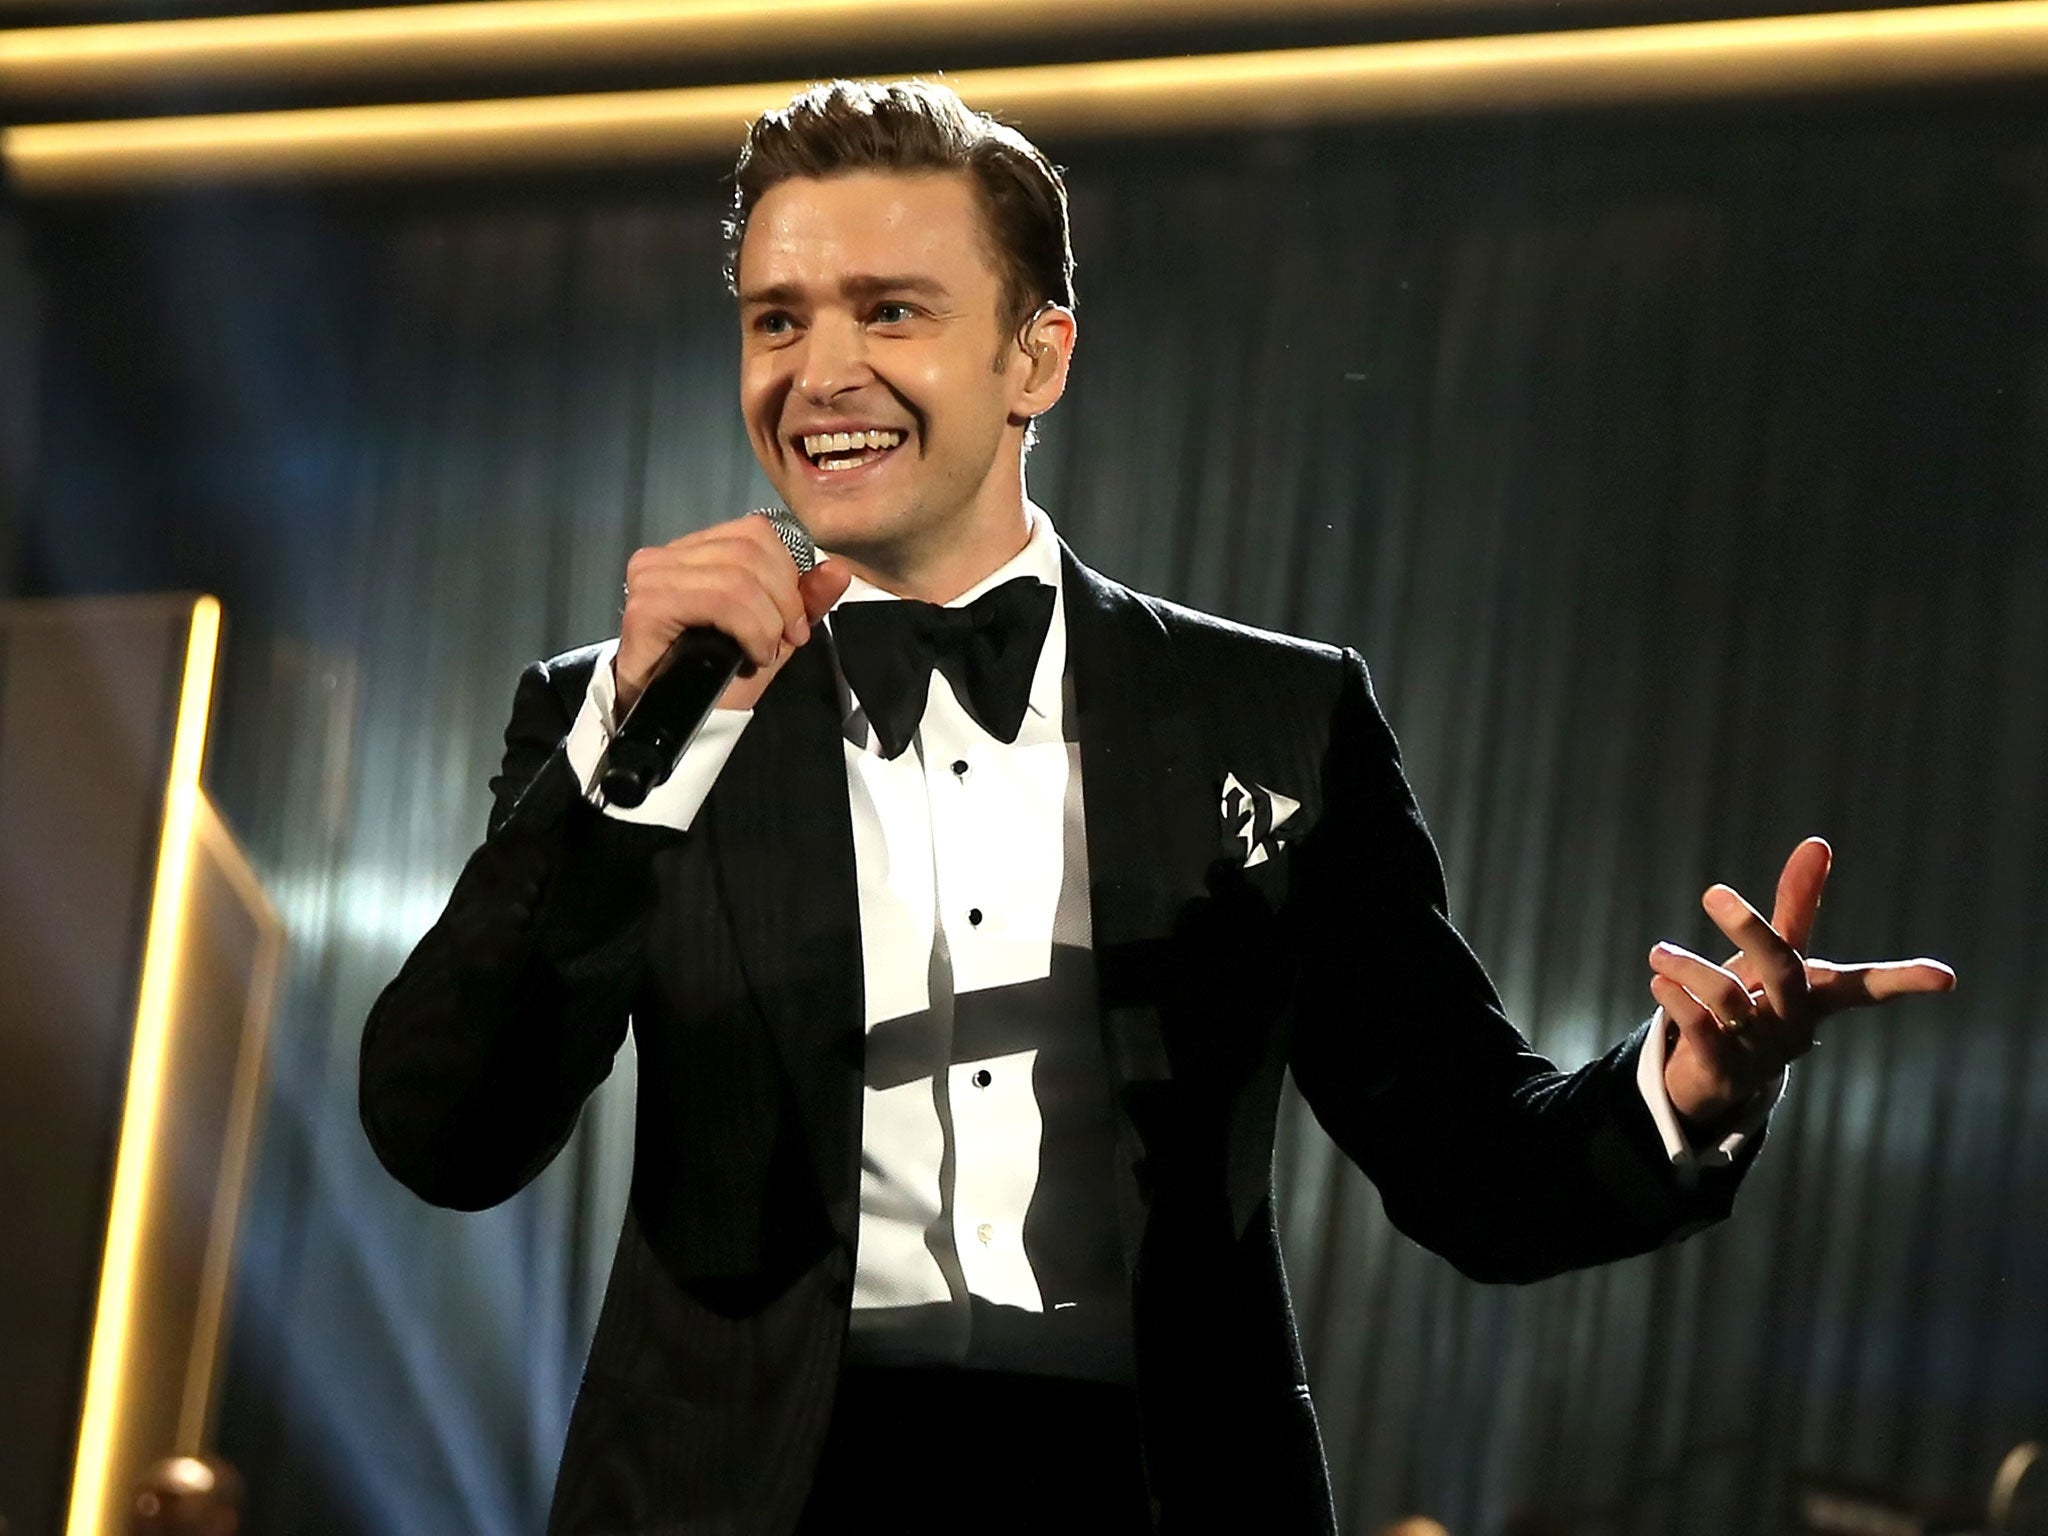 Google chrome themes justin timberlake - Justin Timberlake Performing New Song Can T Stop The Feeling At Eurovision The Independent